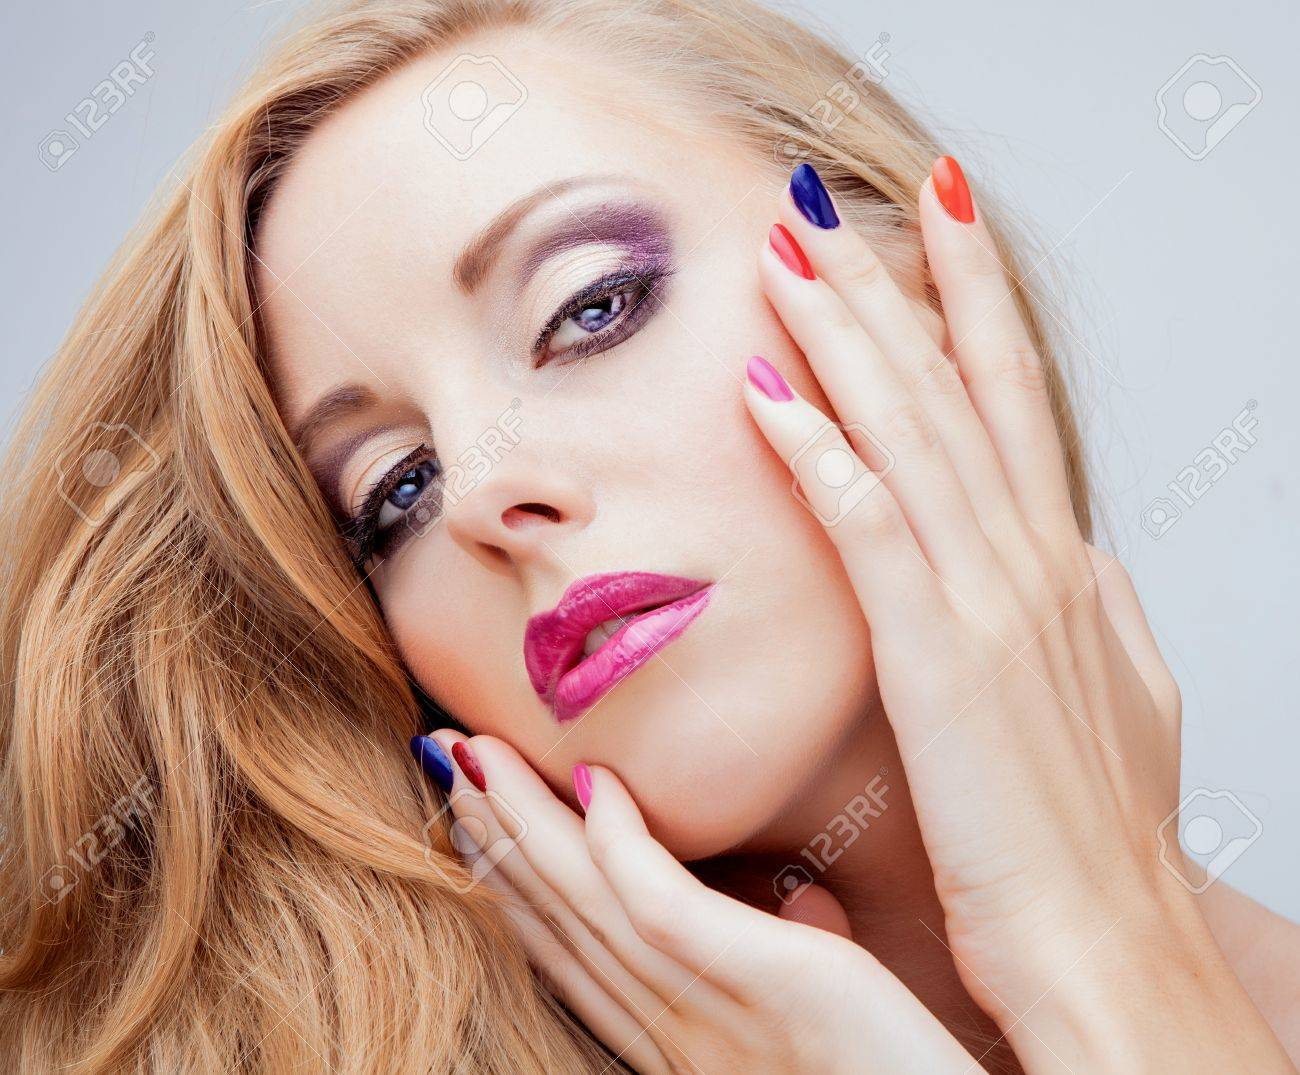 Natural health beauty of a woman face Stock Photo - 15577822